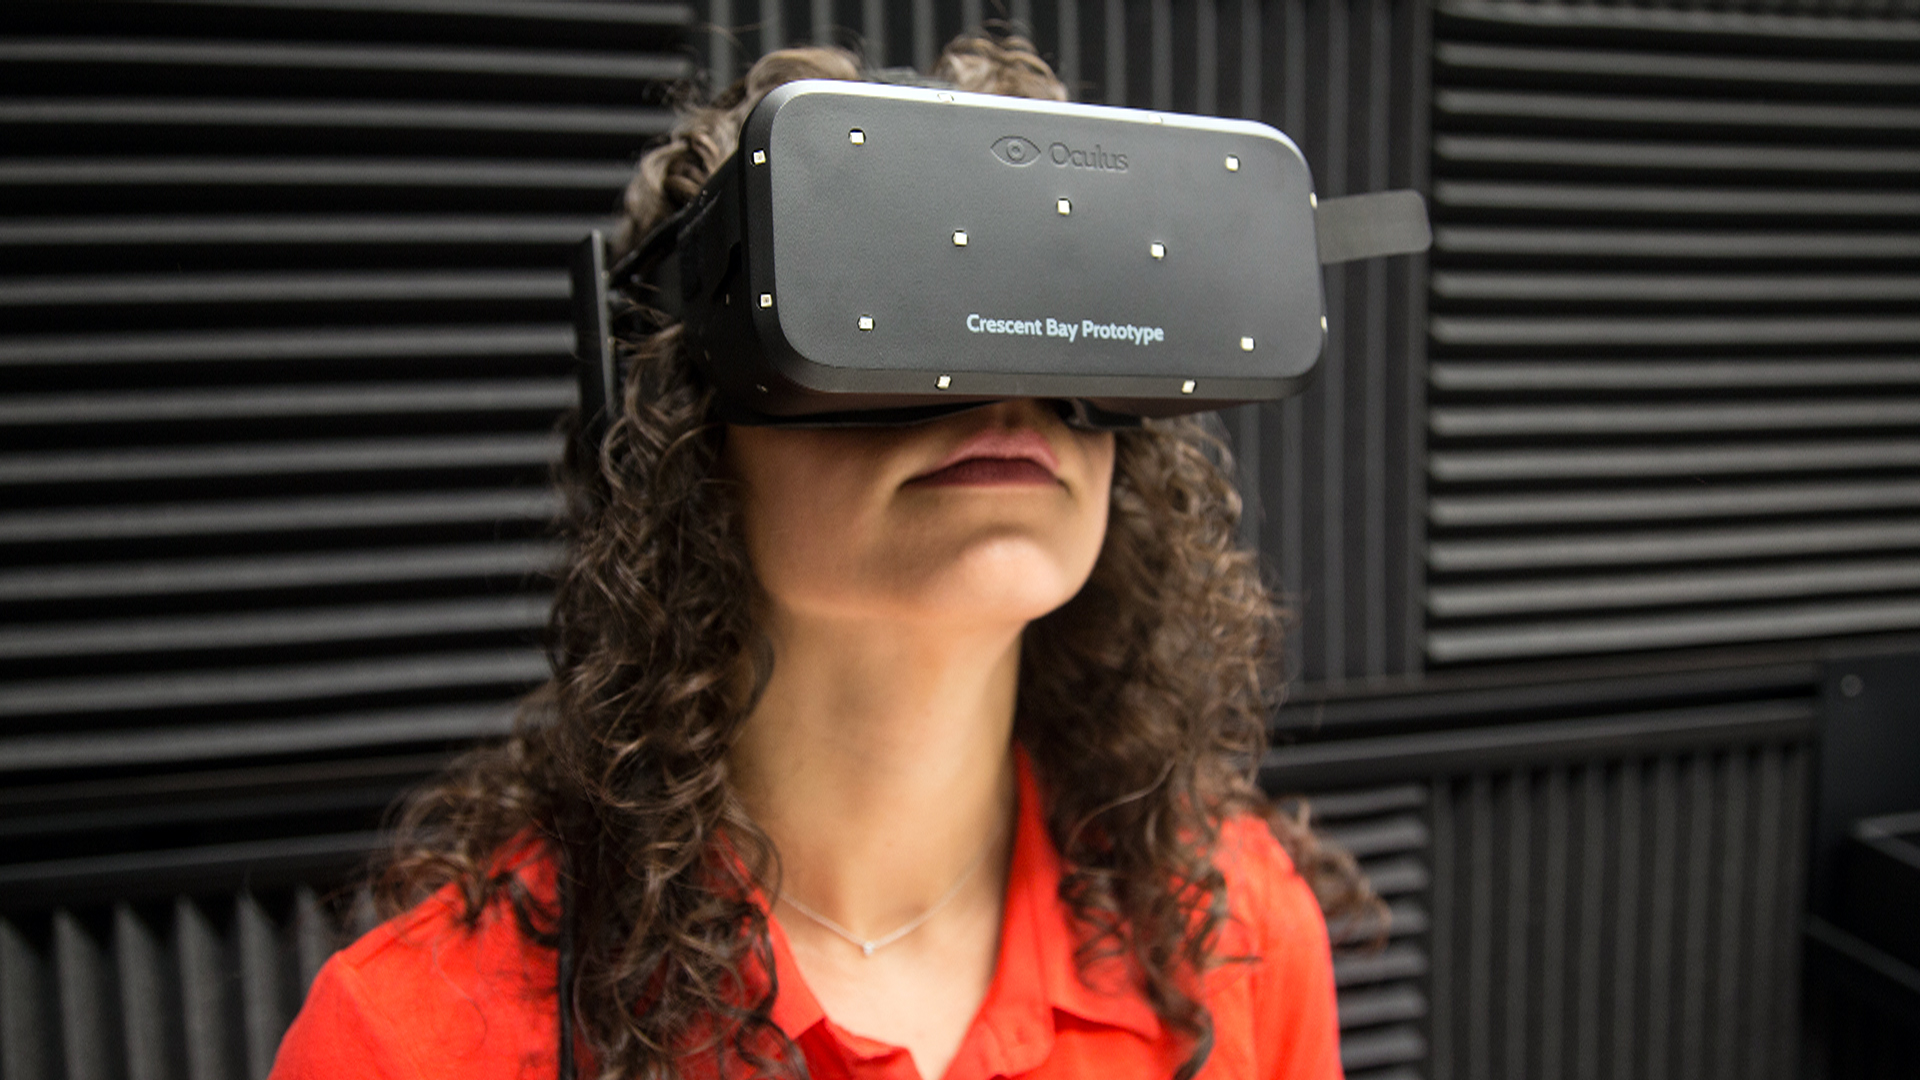 Samsung Virtual Reality Headset Gear VR for Galaxy S 6 Hits Shelves